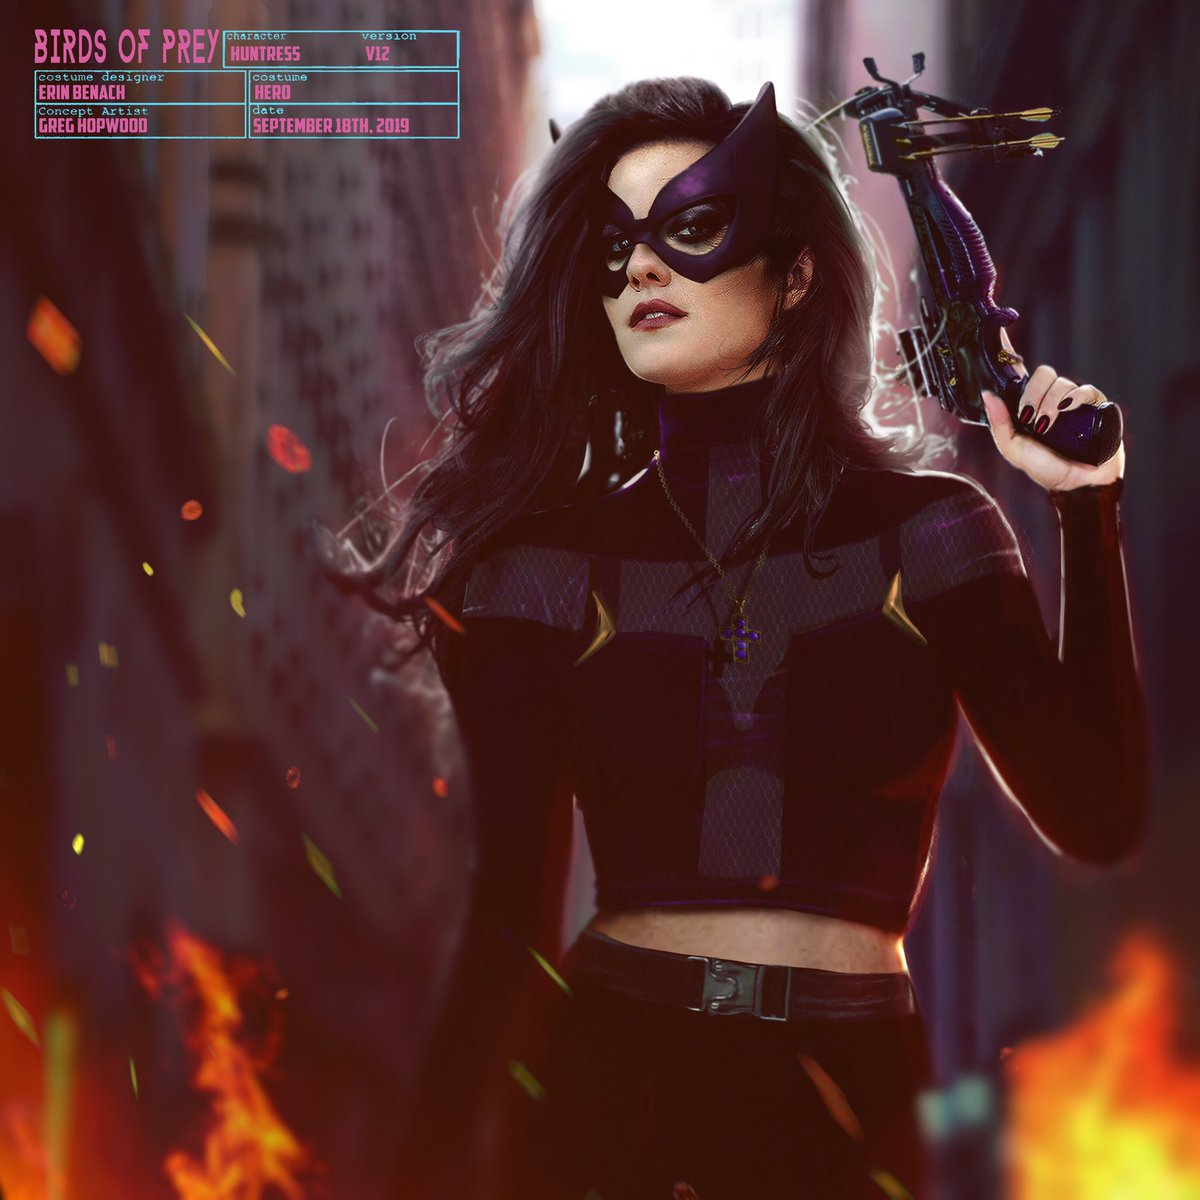 Birds Of Prey Concept Art Reveals A Comic Accurate Take On Mary Elizabeth Winstead S Huntress